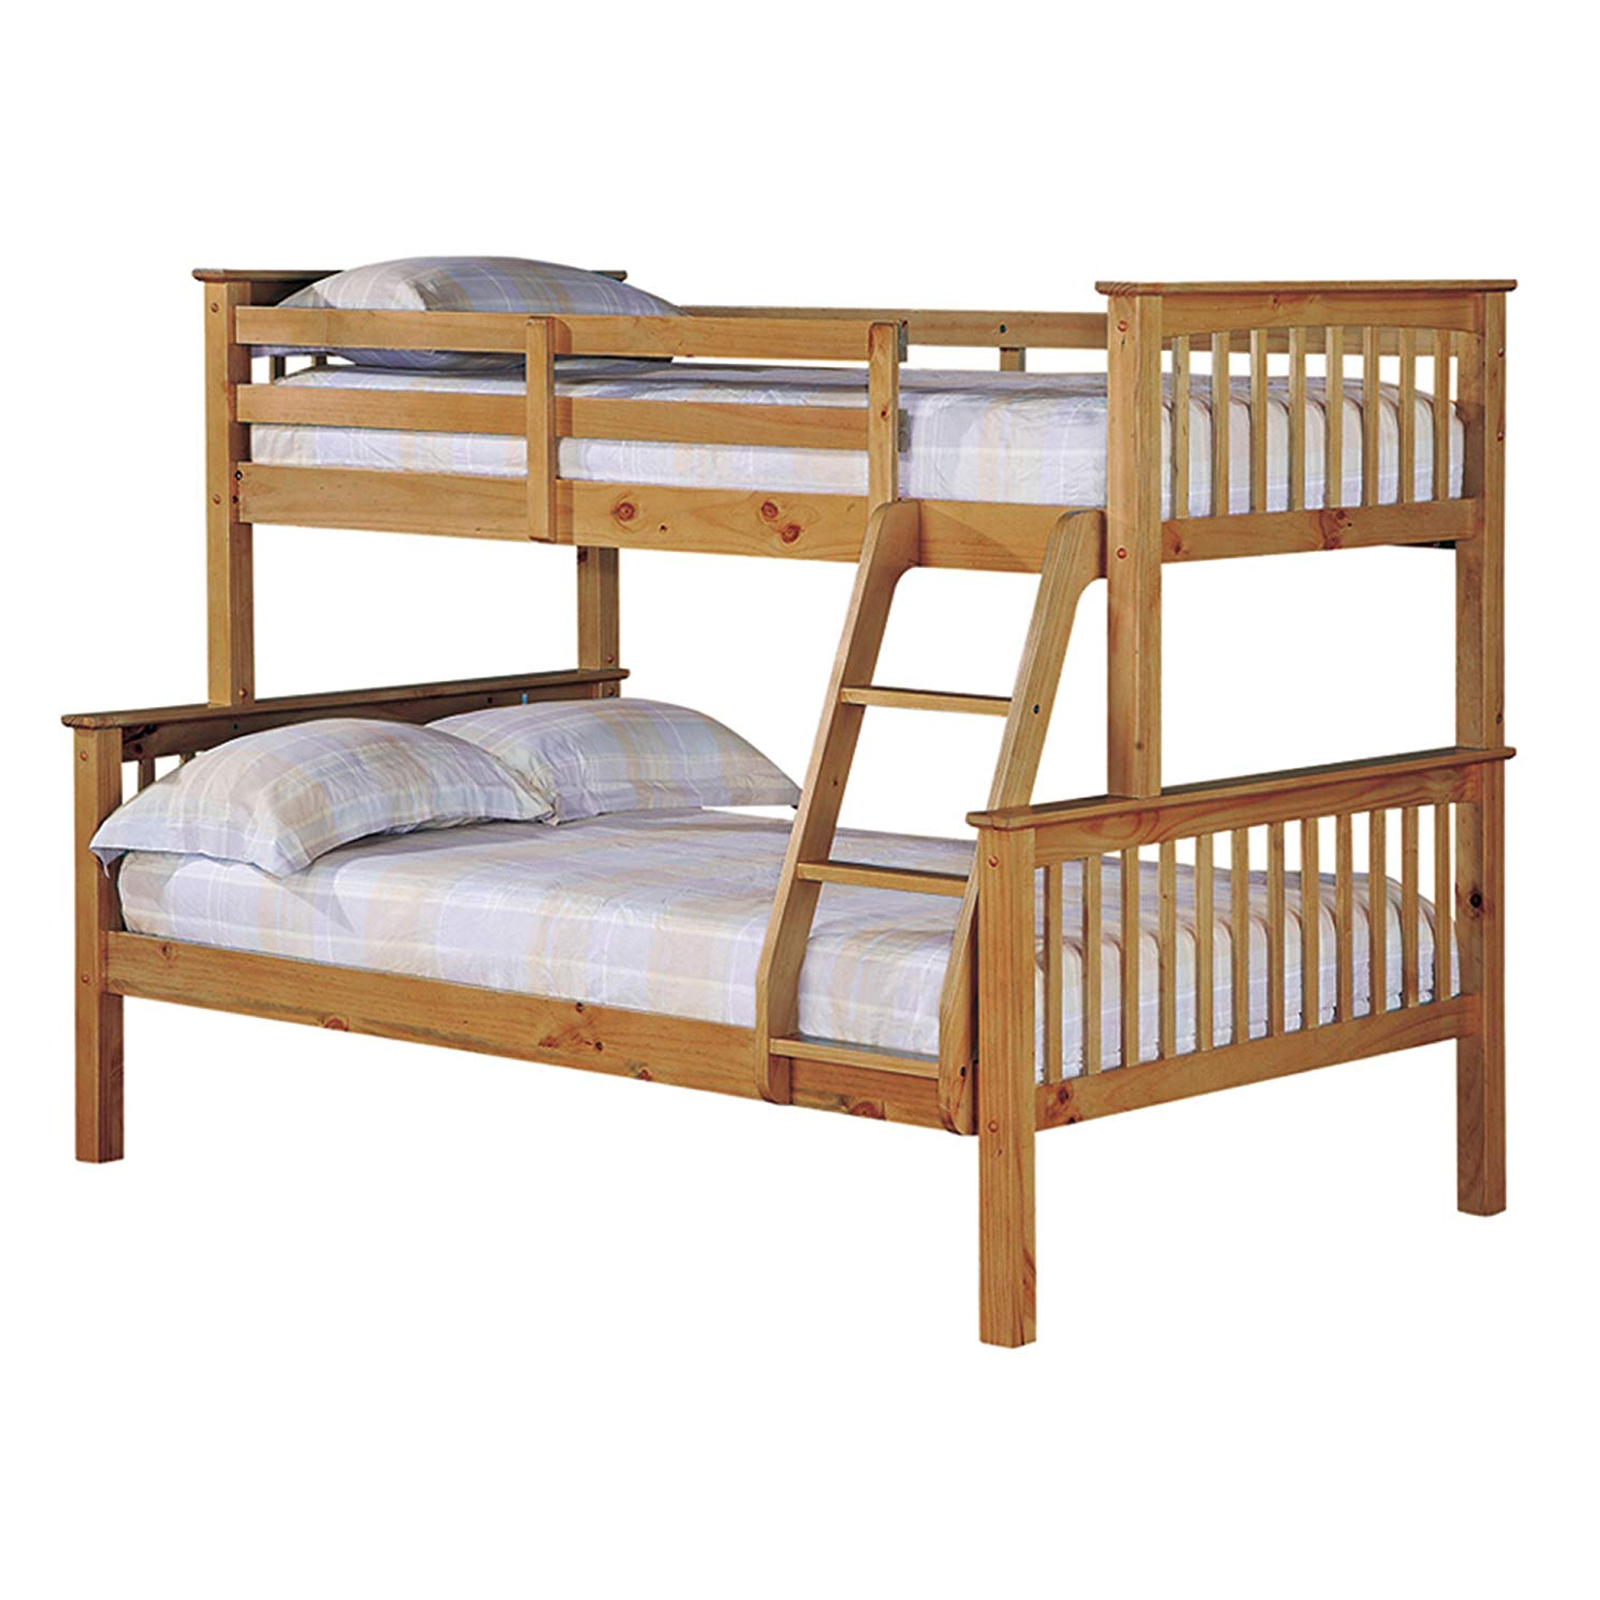 Triple Sleeper High Quality Wax Antique Bunk Bed Sleep Kings